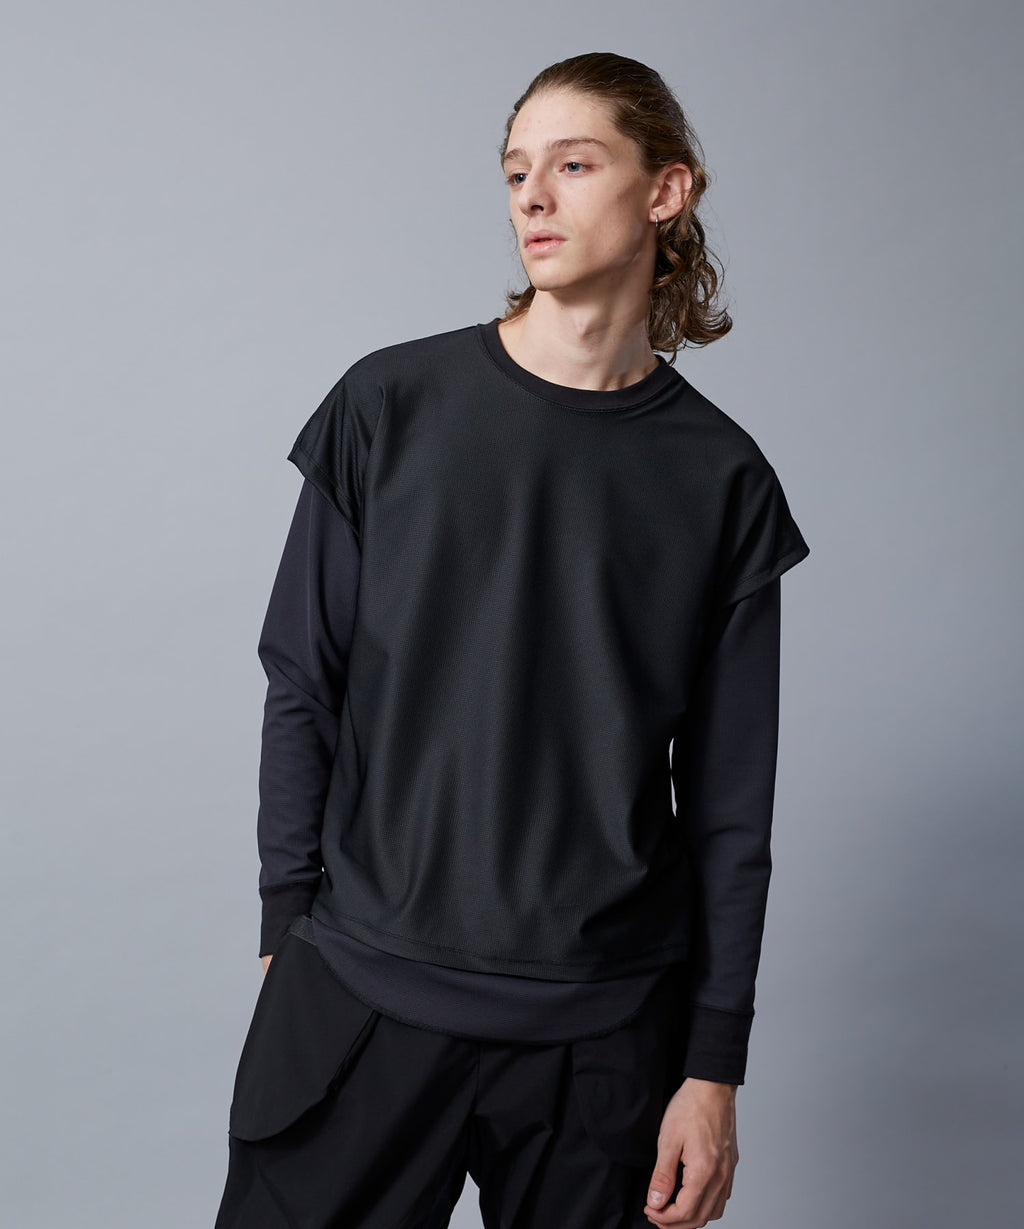 TROVE ACTIVE / LAYERED LONG SLEEVE / BLACK